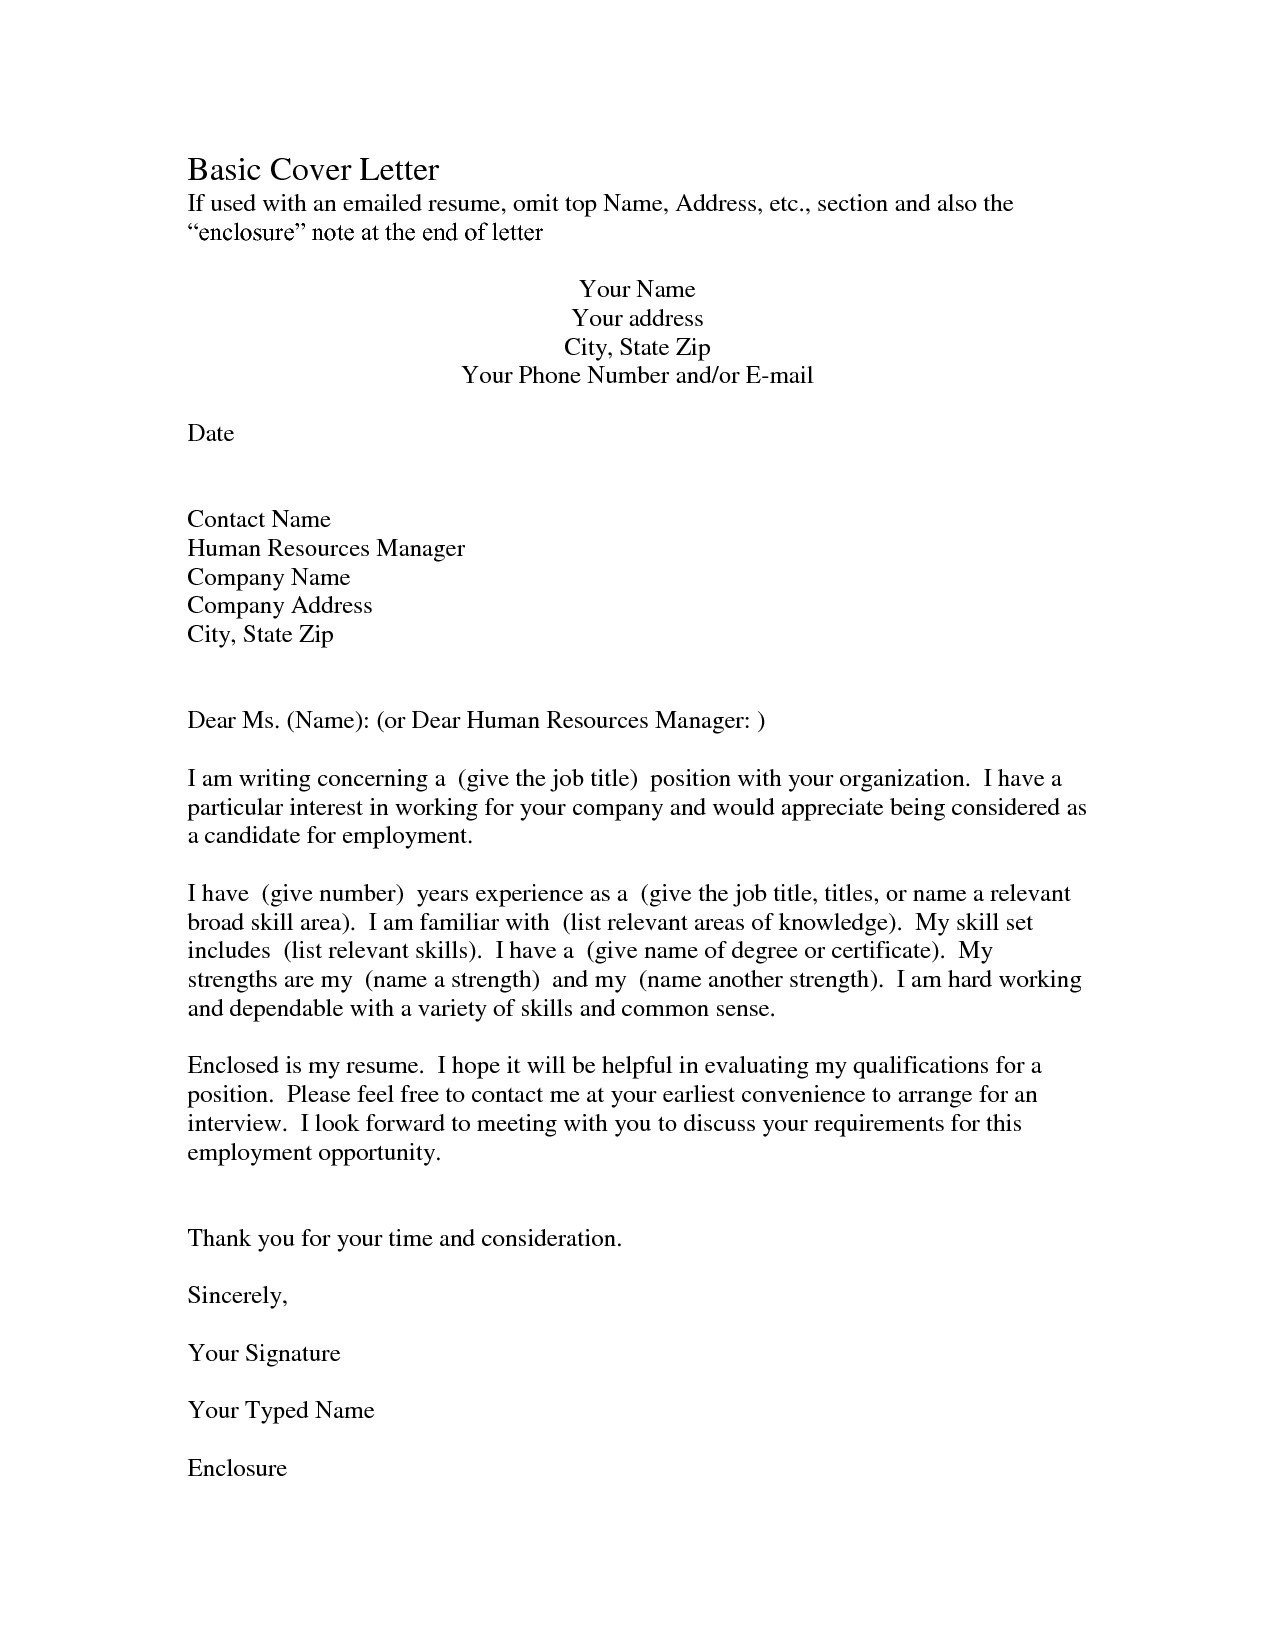 Excellent Cover Letter Template - What is A Cover Letter for Resume Elegant New Letter Template Fresh